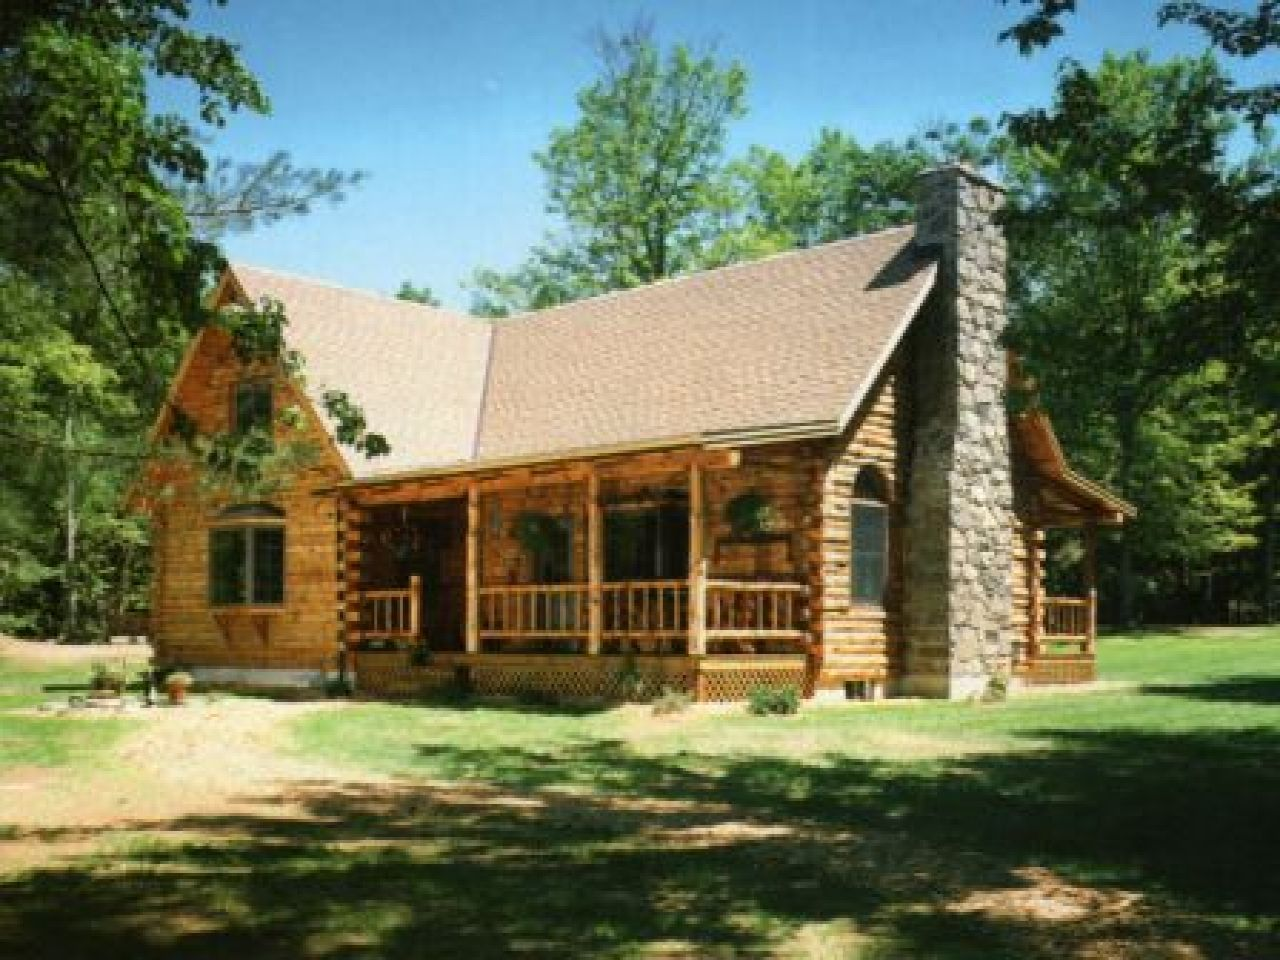 Rustic Cottage House Plan Small Cabin Log Luxury Mountain Plans Home Small Log Homes Log Cabin House Plans Cabin House Plans